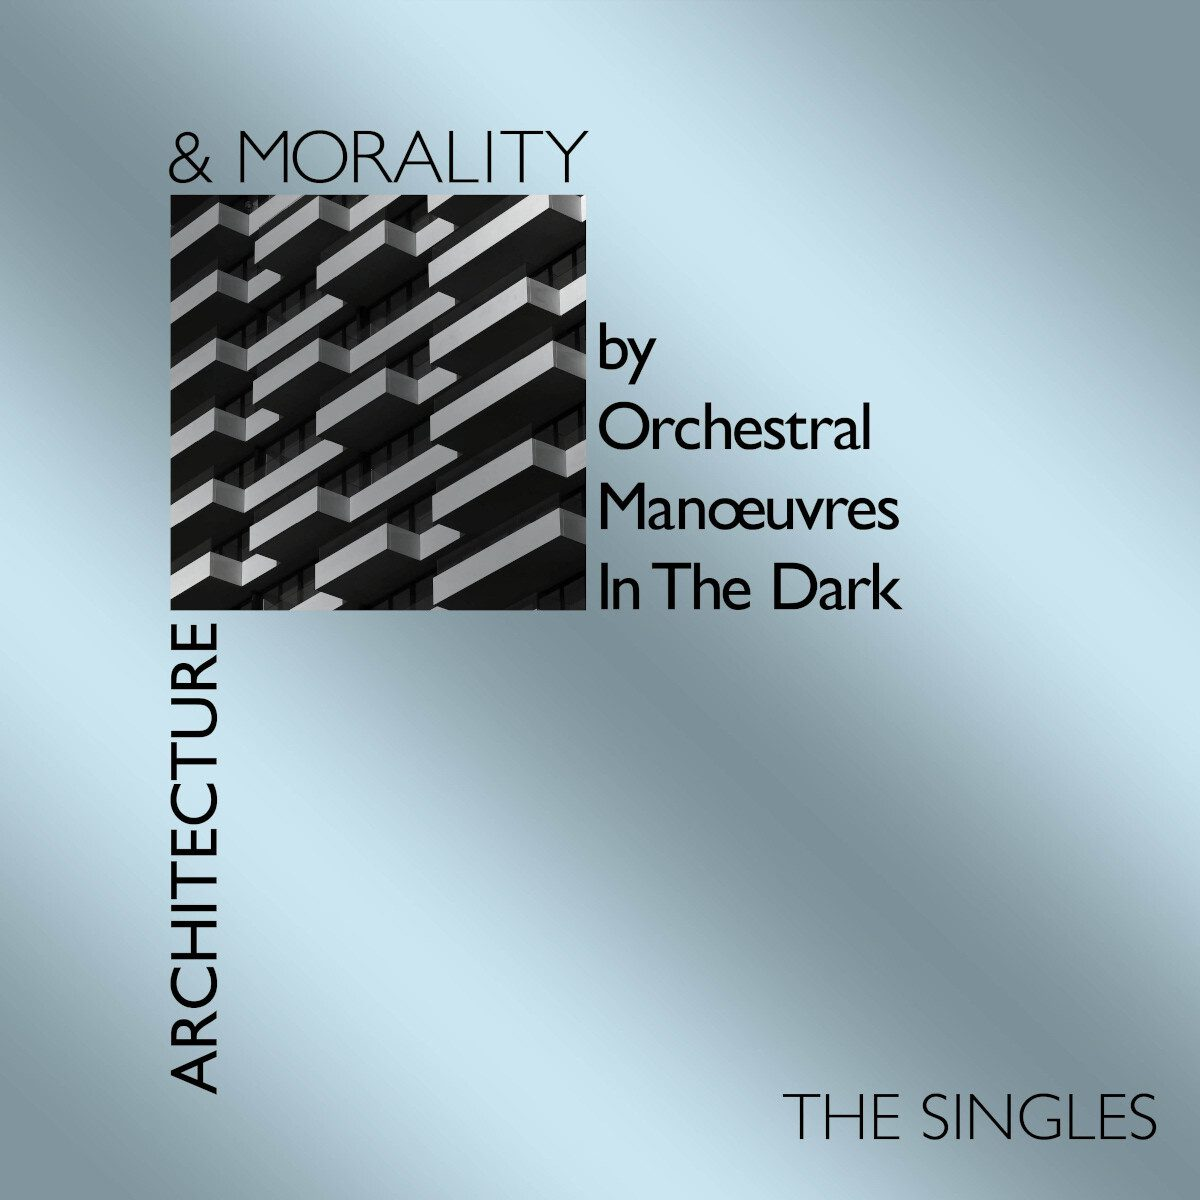 OMD to release 'Architecture & Morality (The Singles)' in celebration of the album's 40th anniversary